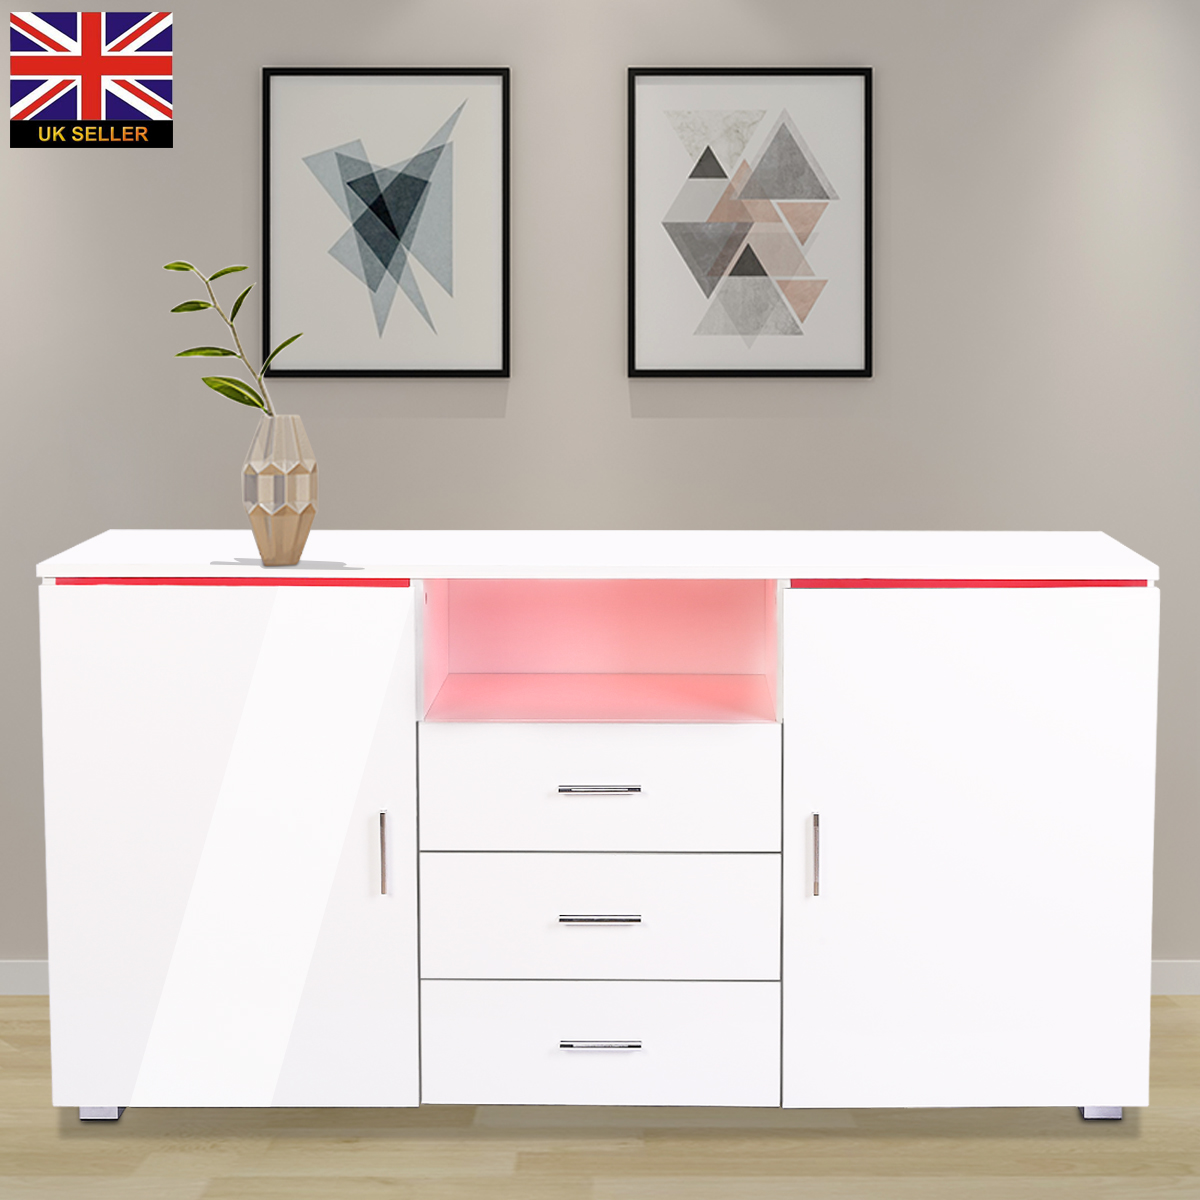 Living Room Cabinets MDF+Particle Board Modern Bedside Storage Cabinet Multifunctional Cabinet With LED Ligth 139 X 35 X 72cm